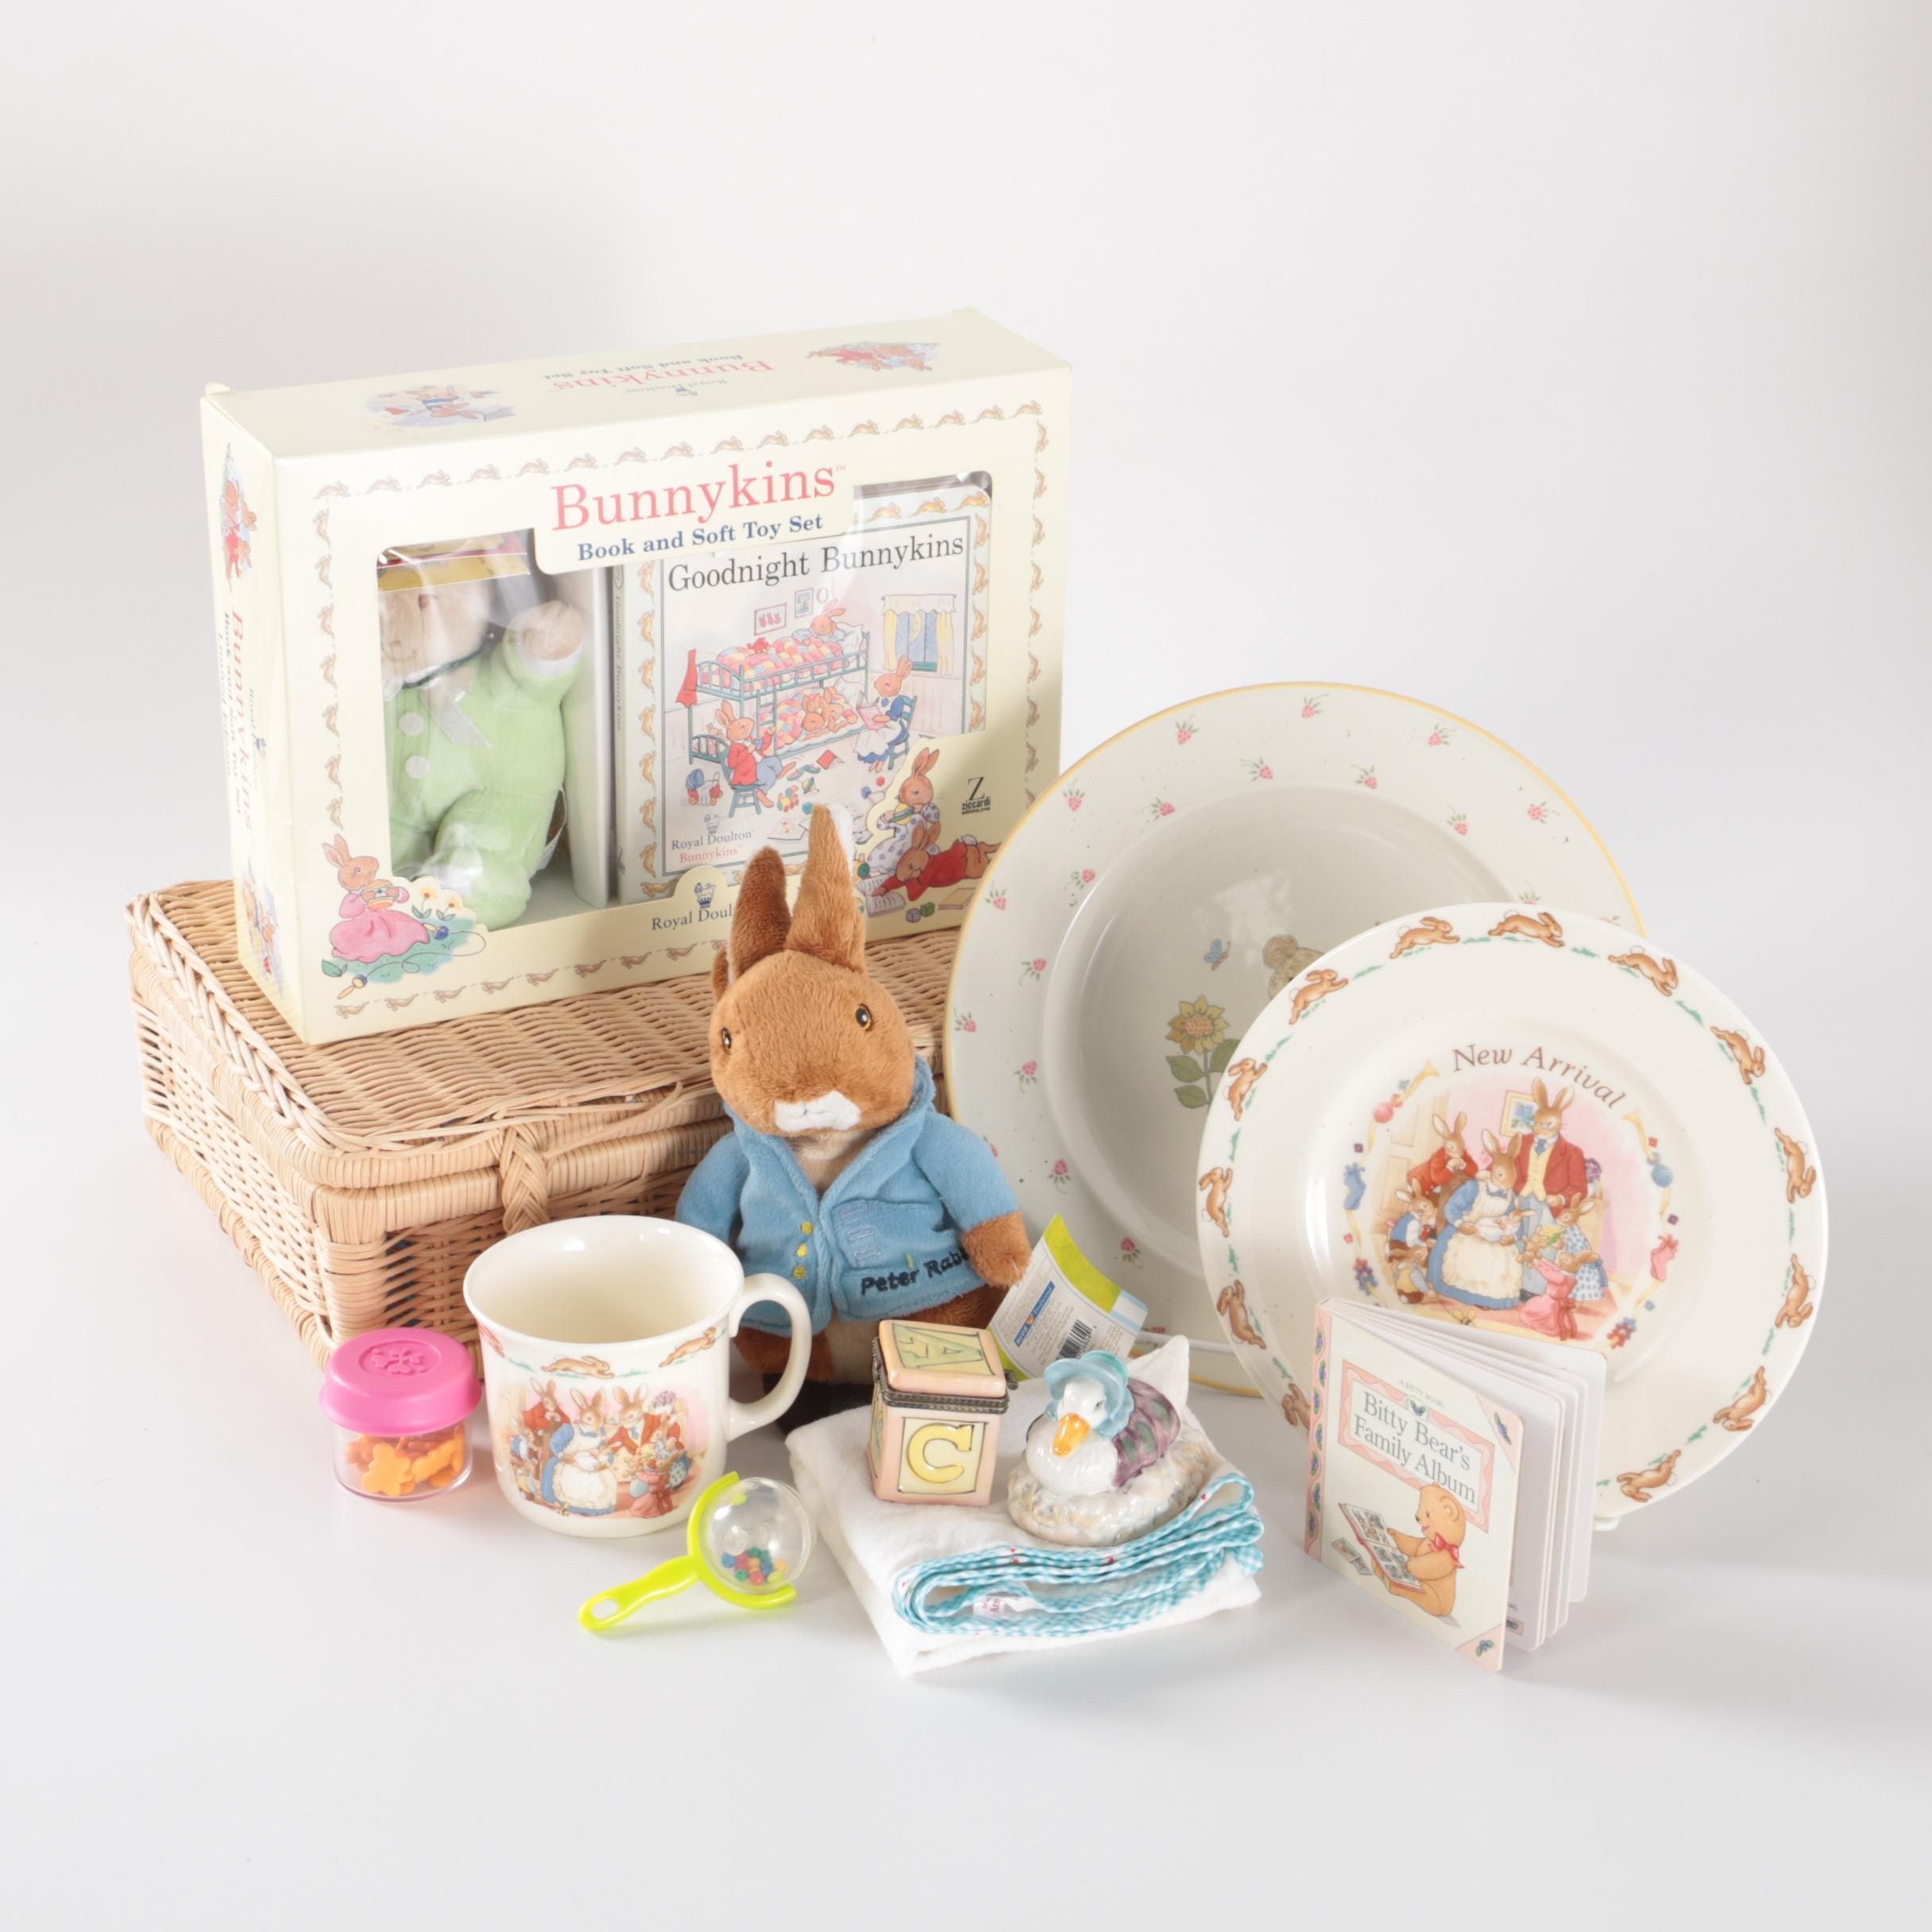 Wedgwood Beatrix Potter Peter Rabbit and Royal Doulton Bunnykins Collectibles